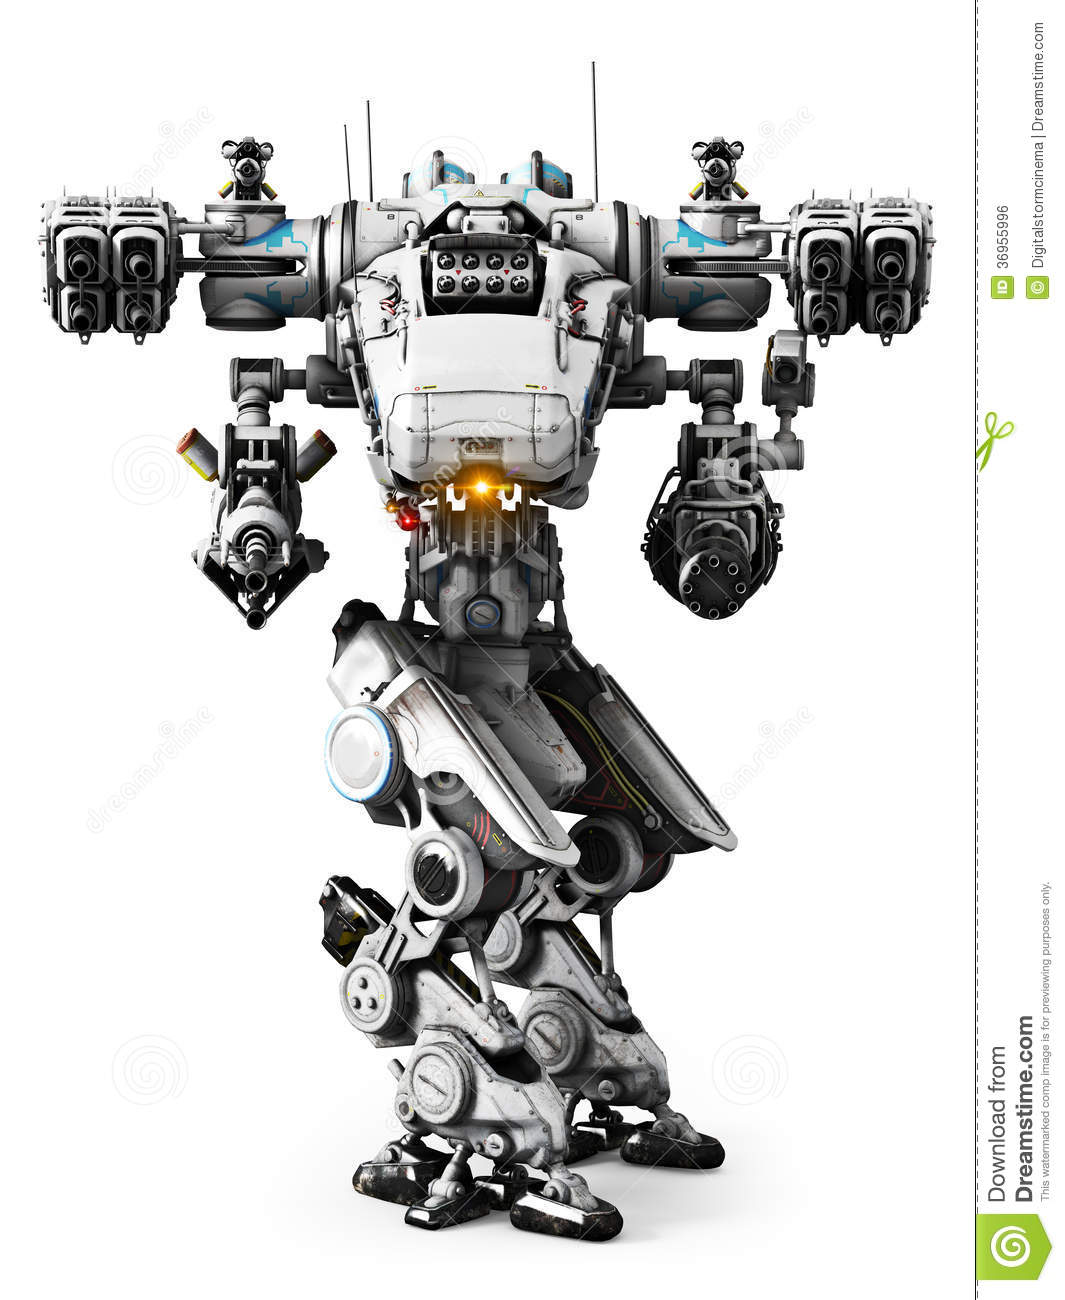 White Mech Weapon With Full Array Of Guns Pointed Royalty